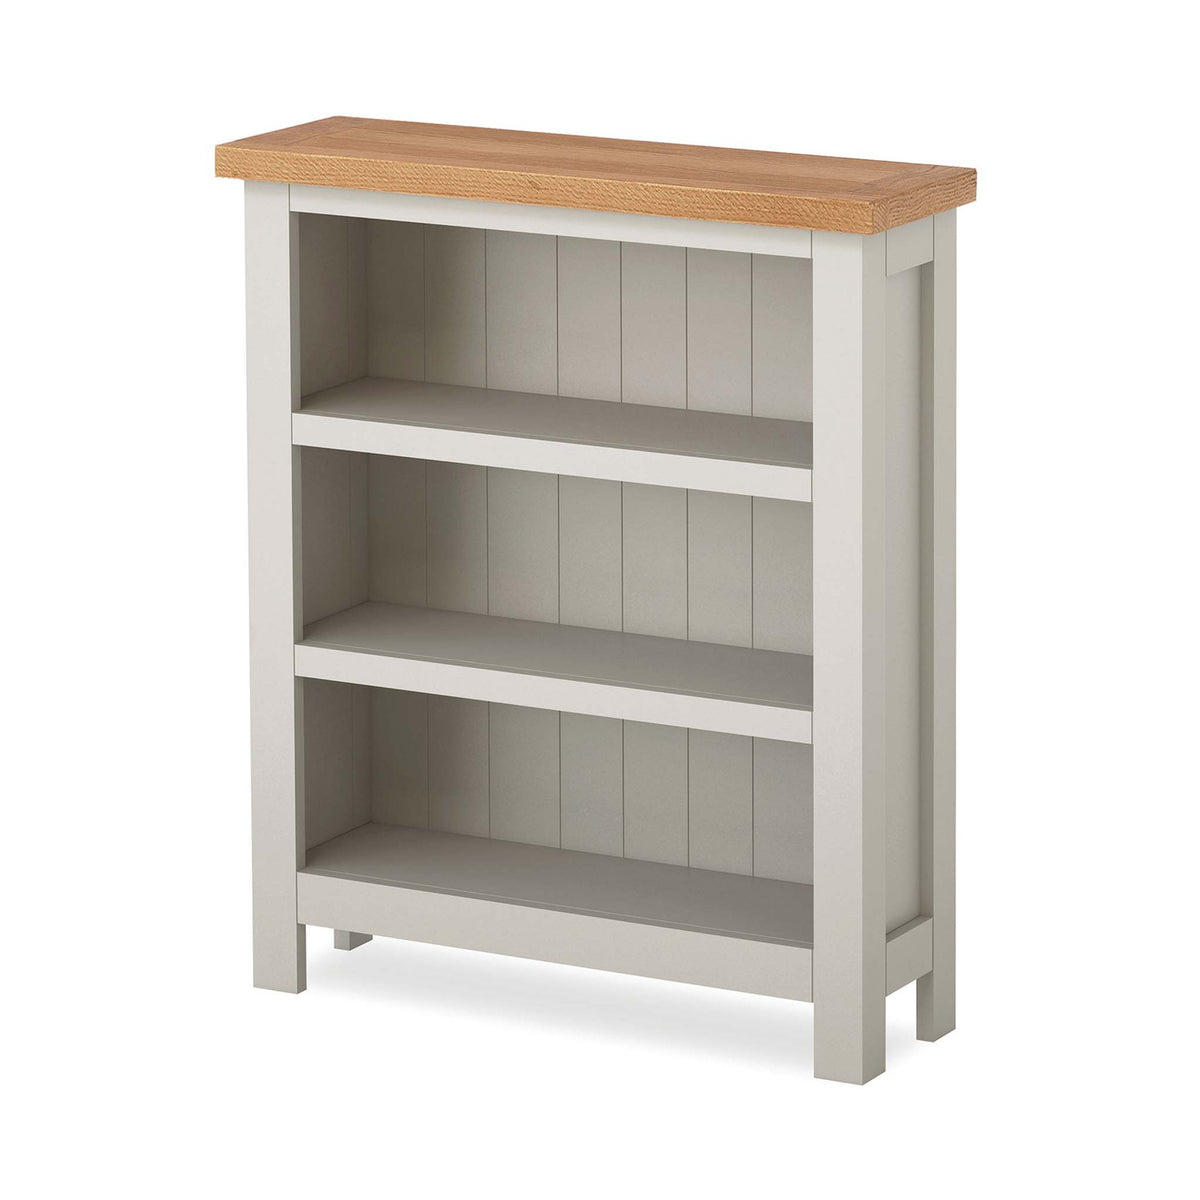 Dorset Stone Grey Small Bookcase by Roseland Furniture